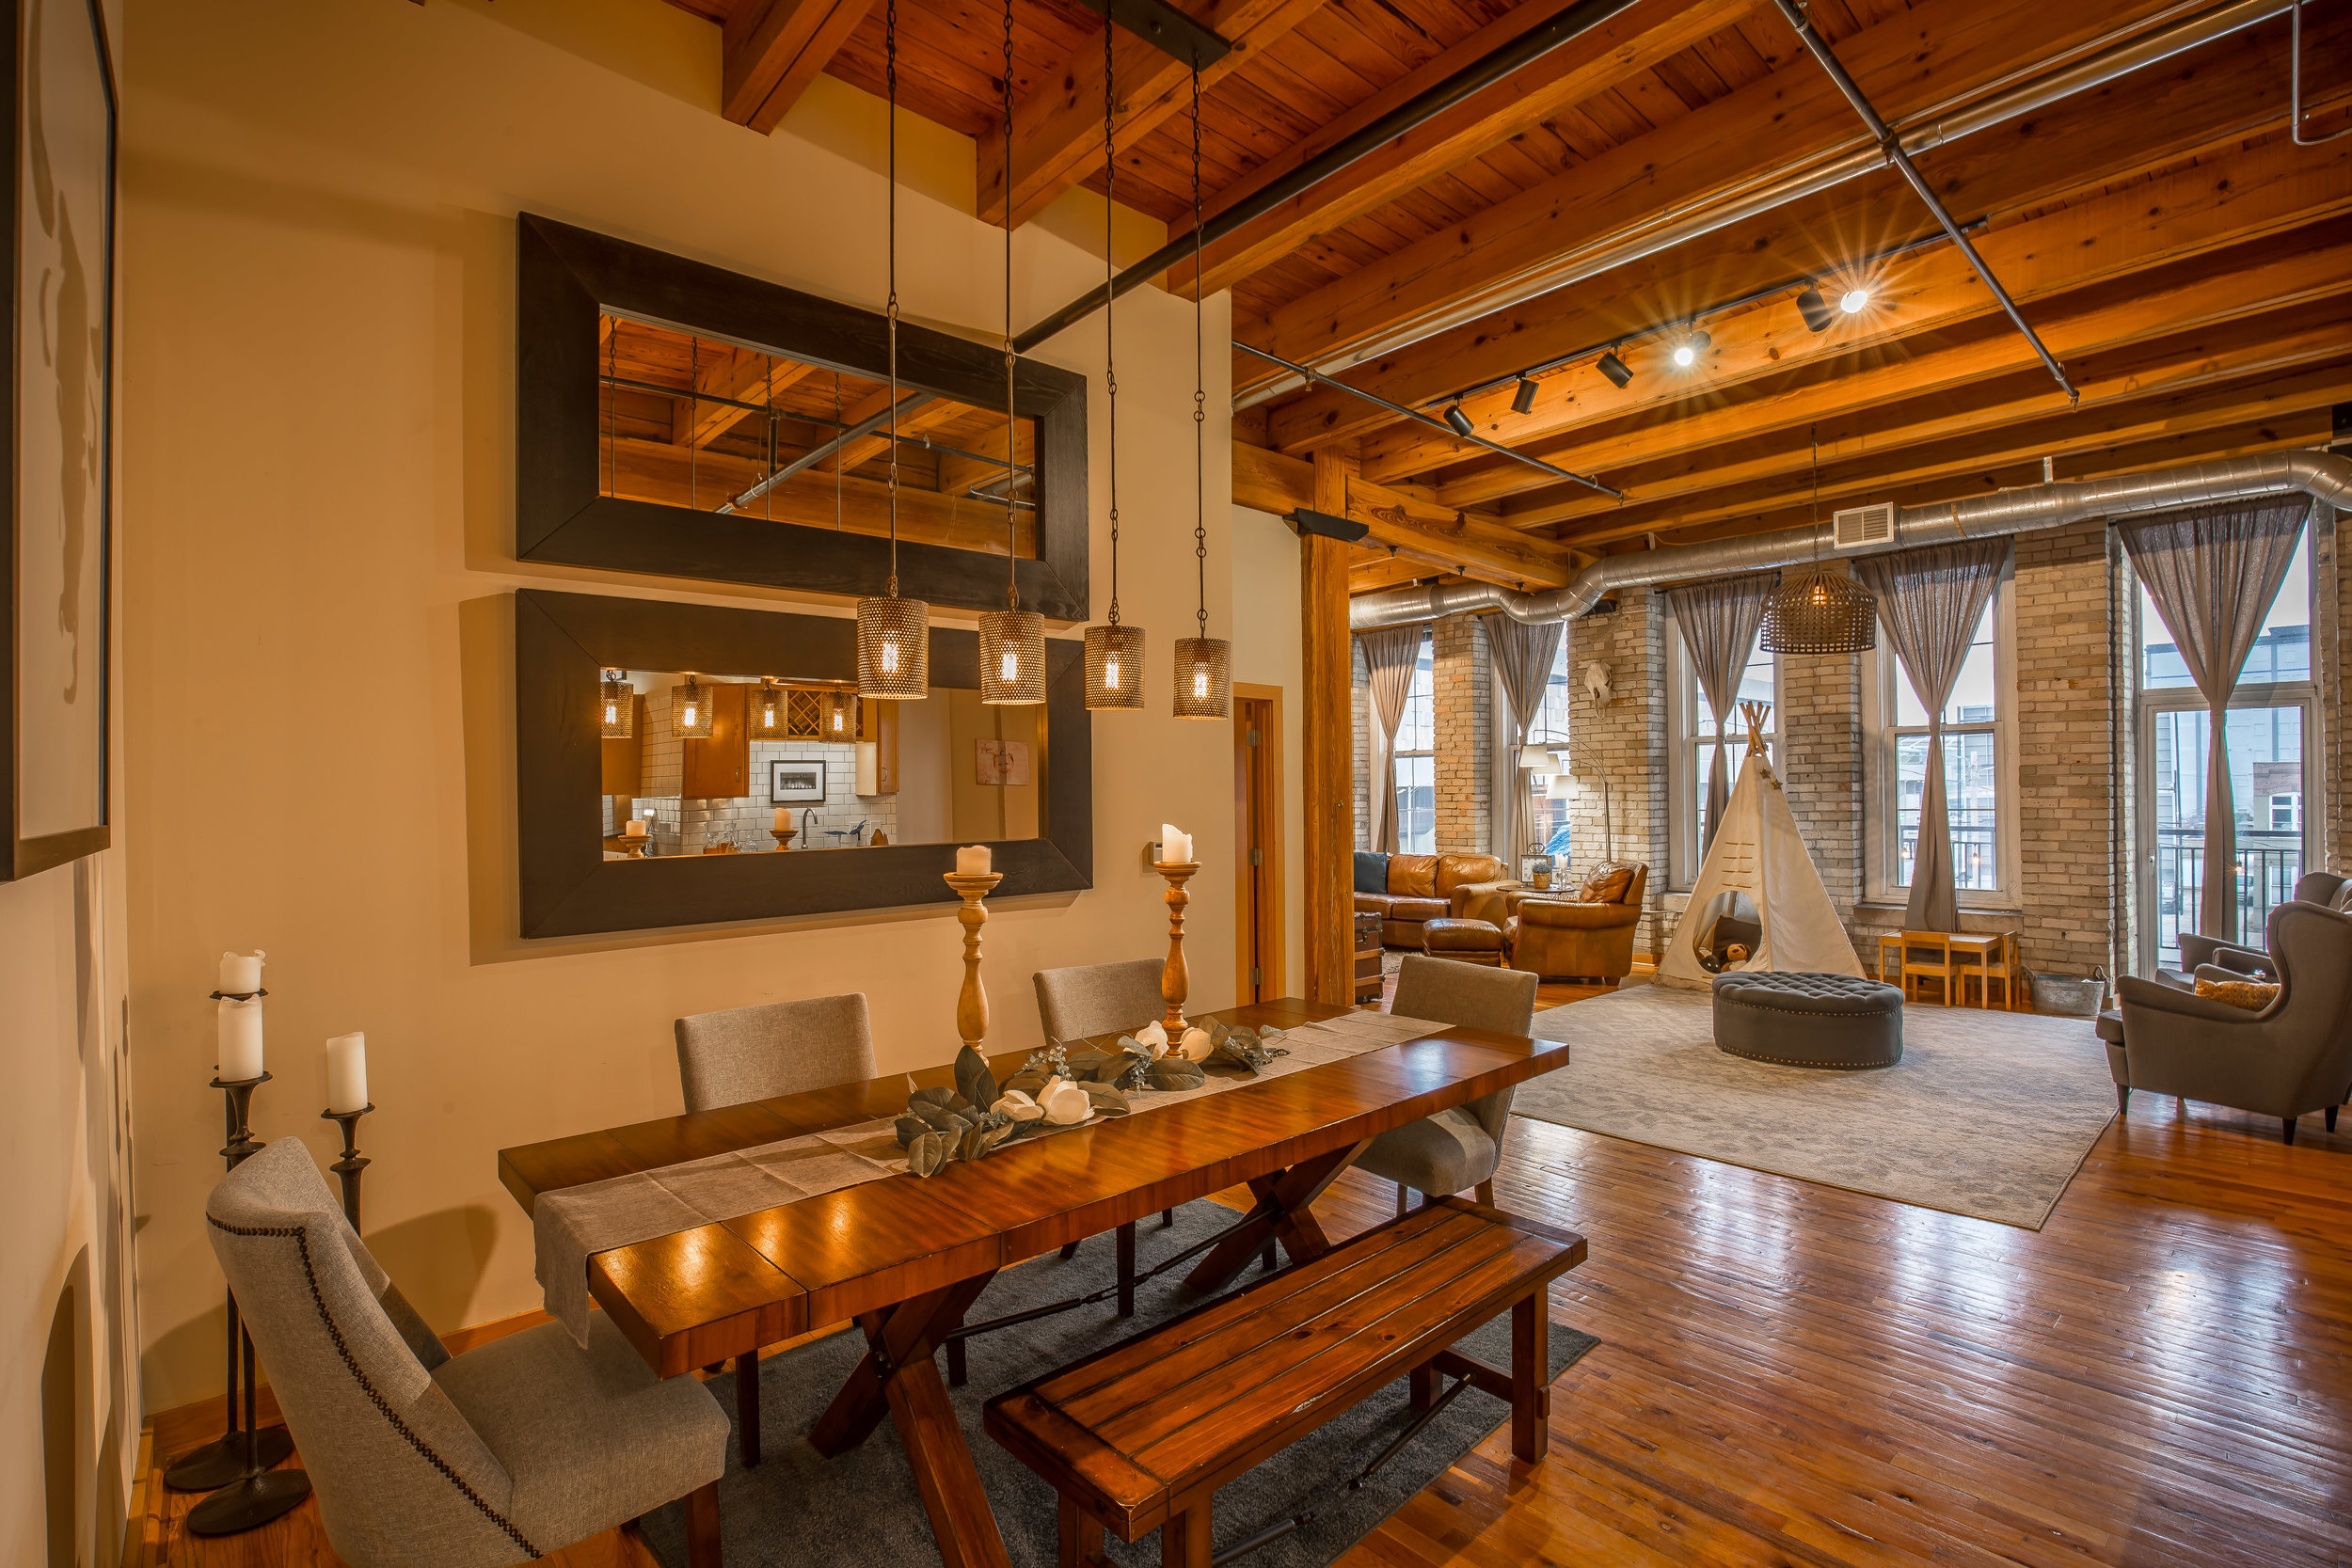 For a Showing  - 413 N 2nd St Unit 60 Milwaukee, WisconsinCall Chris Kramer-Nesbitt for a private showing if you can't attend: 262 893 7044  Click:Experience the 360 walk-through